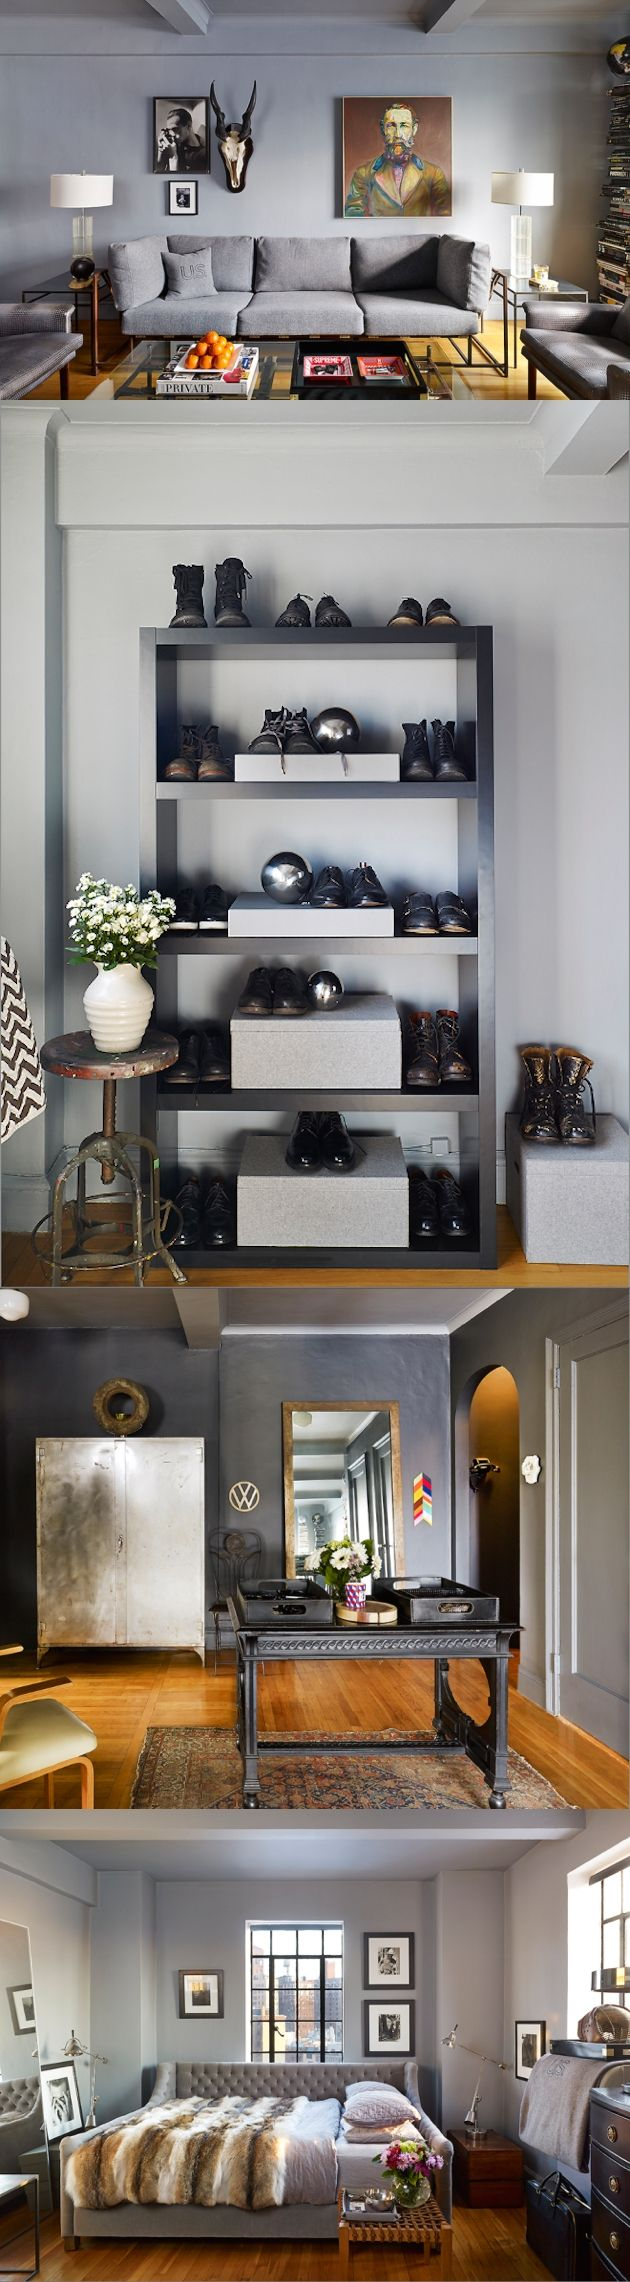 Nick Wooster's Awesome Apartment